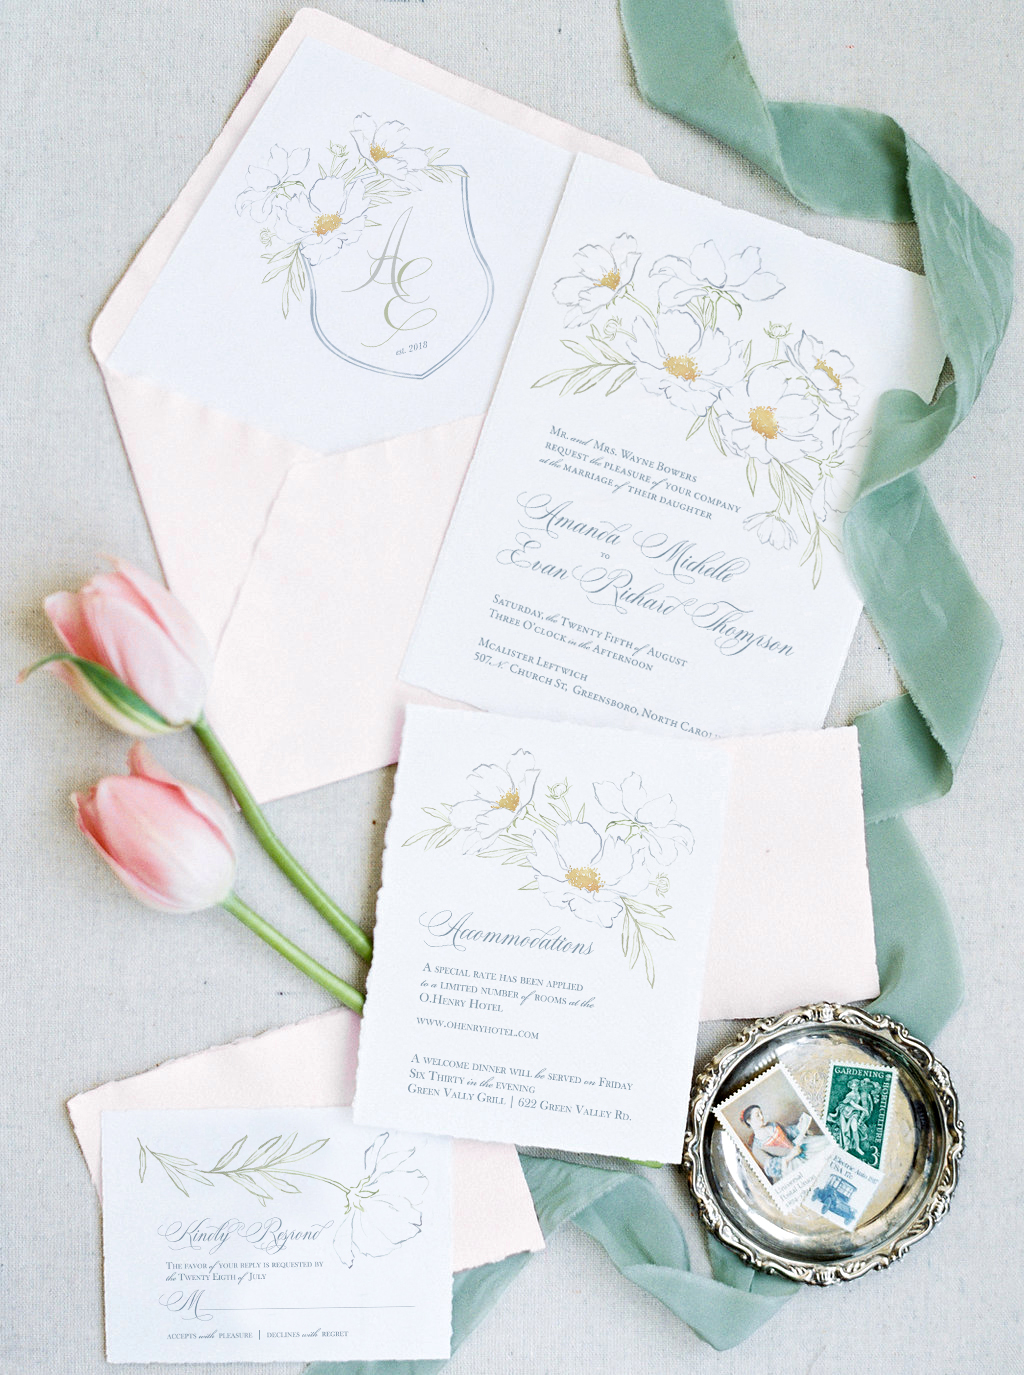 Fine-art-wedding-invitations-ethereal-watercolor.jpg